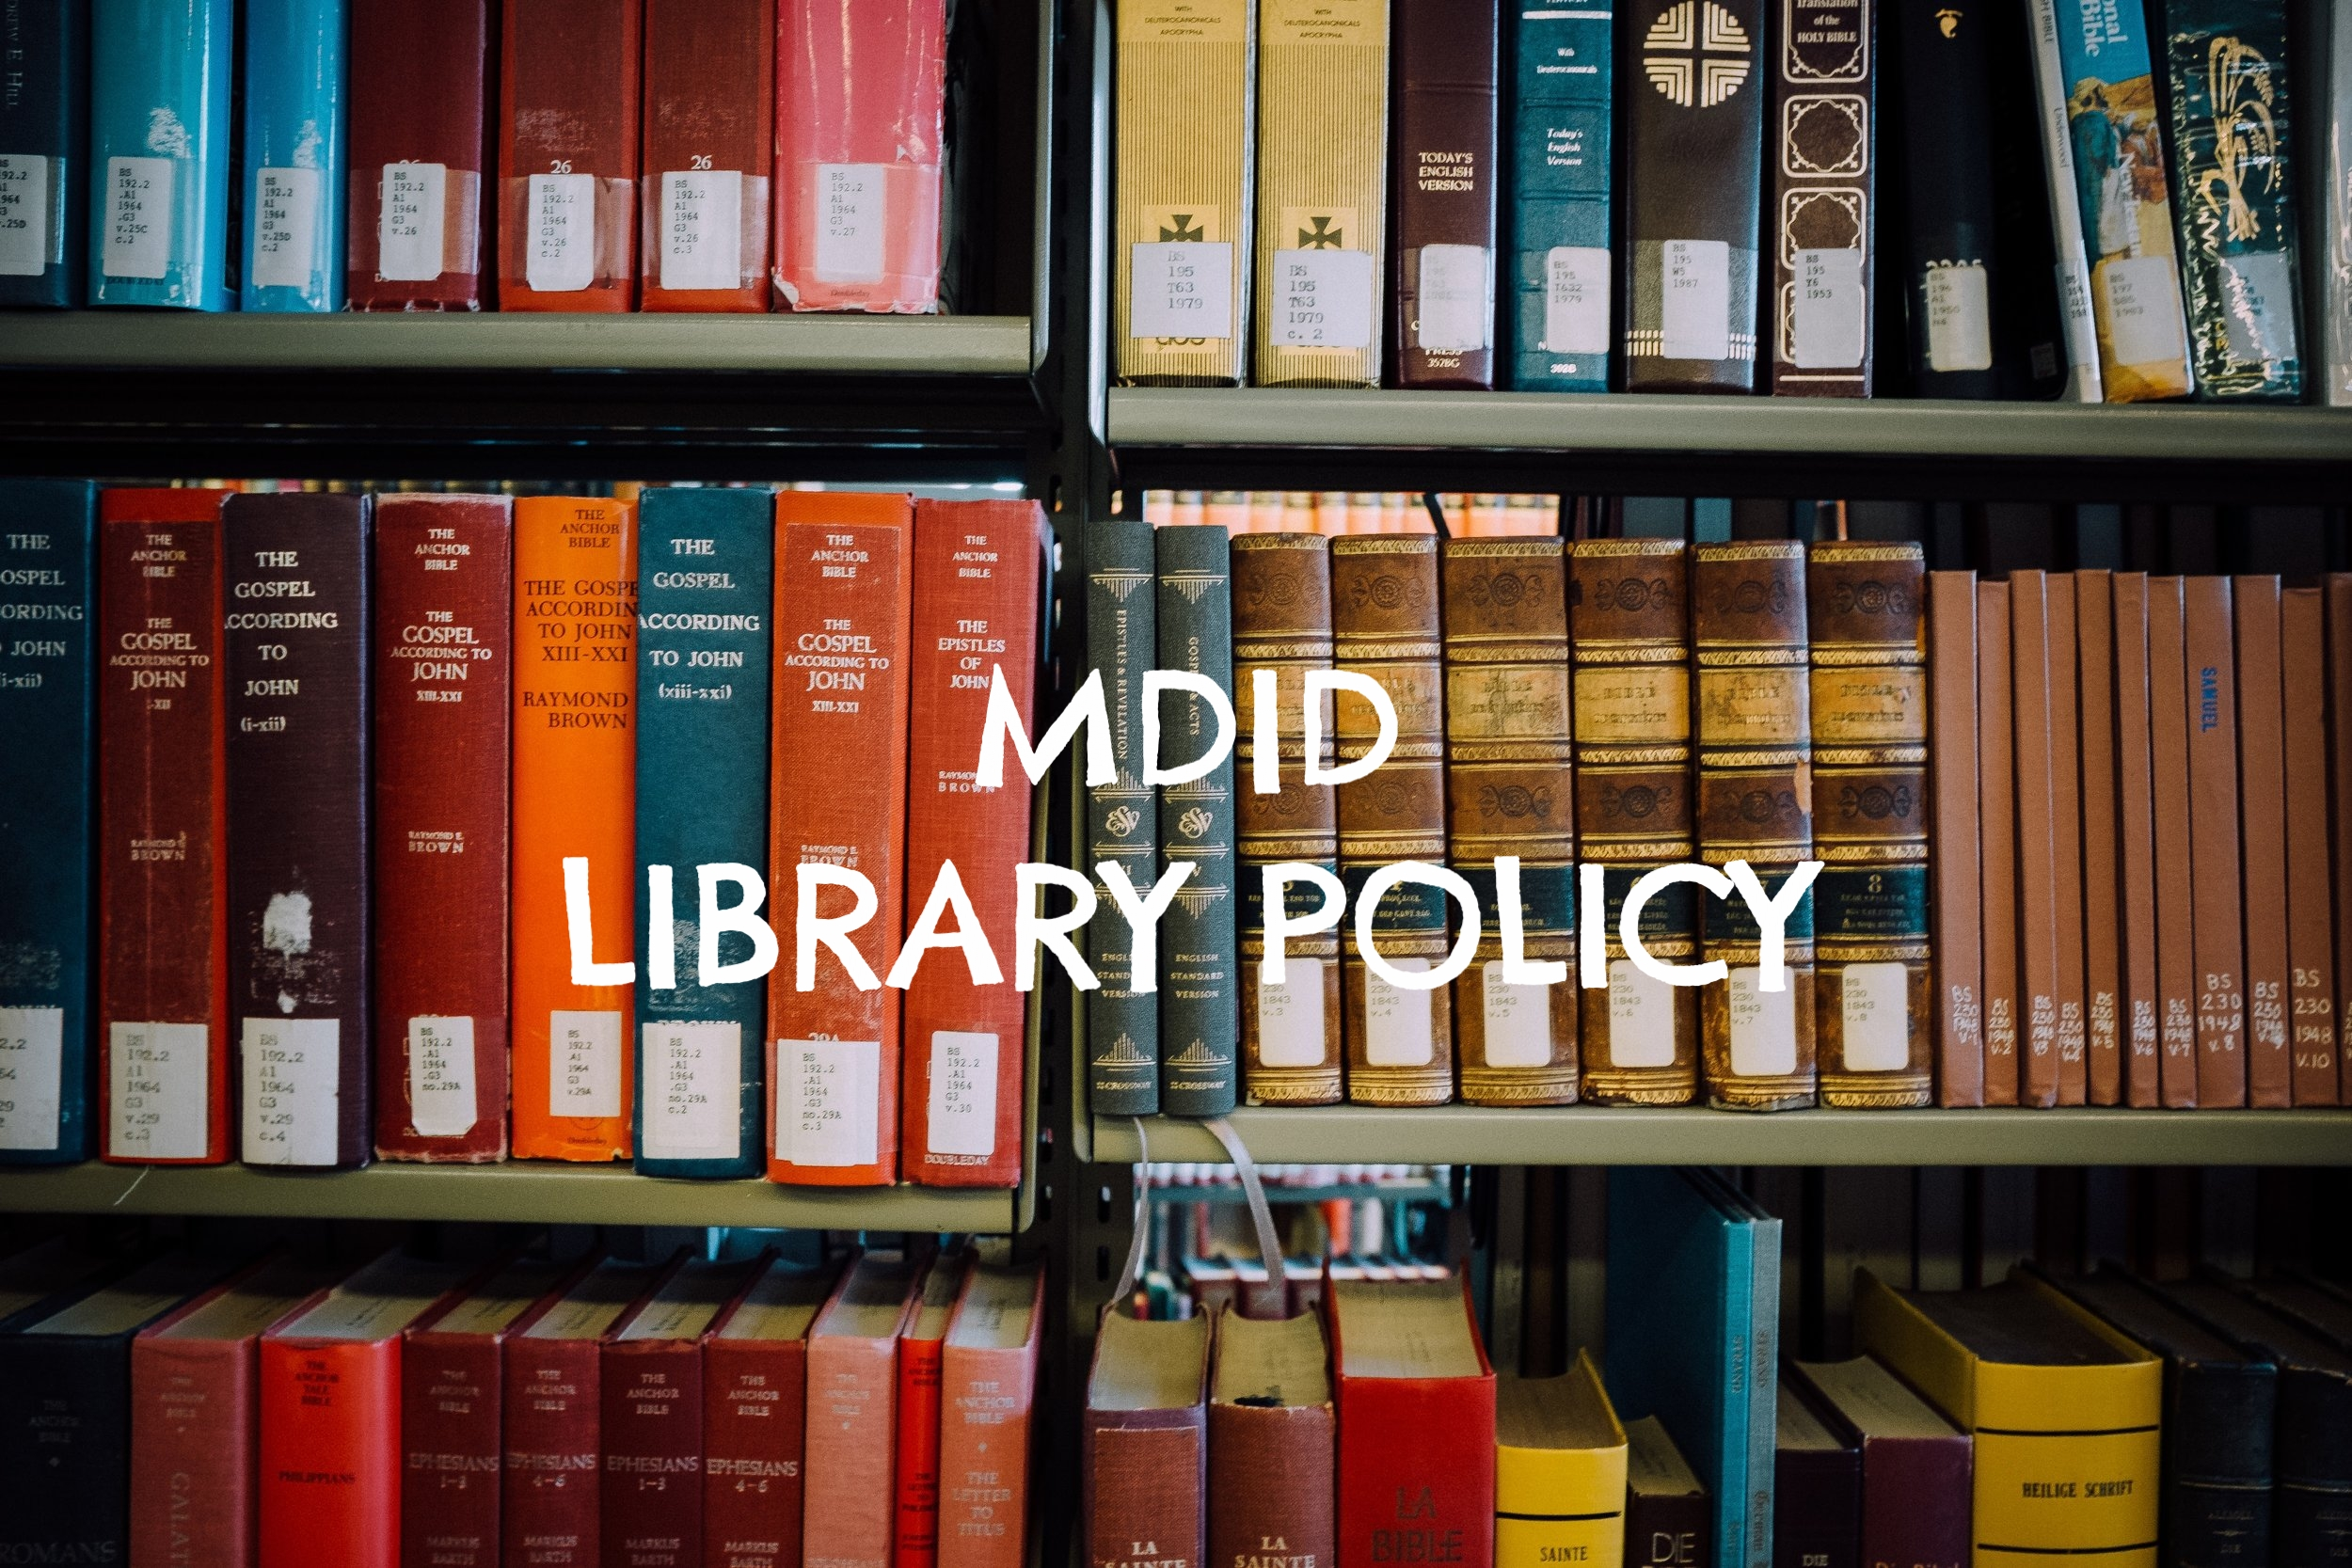 Library Policy